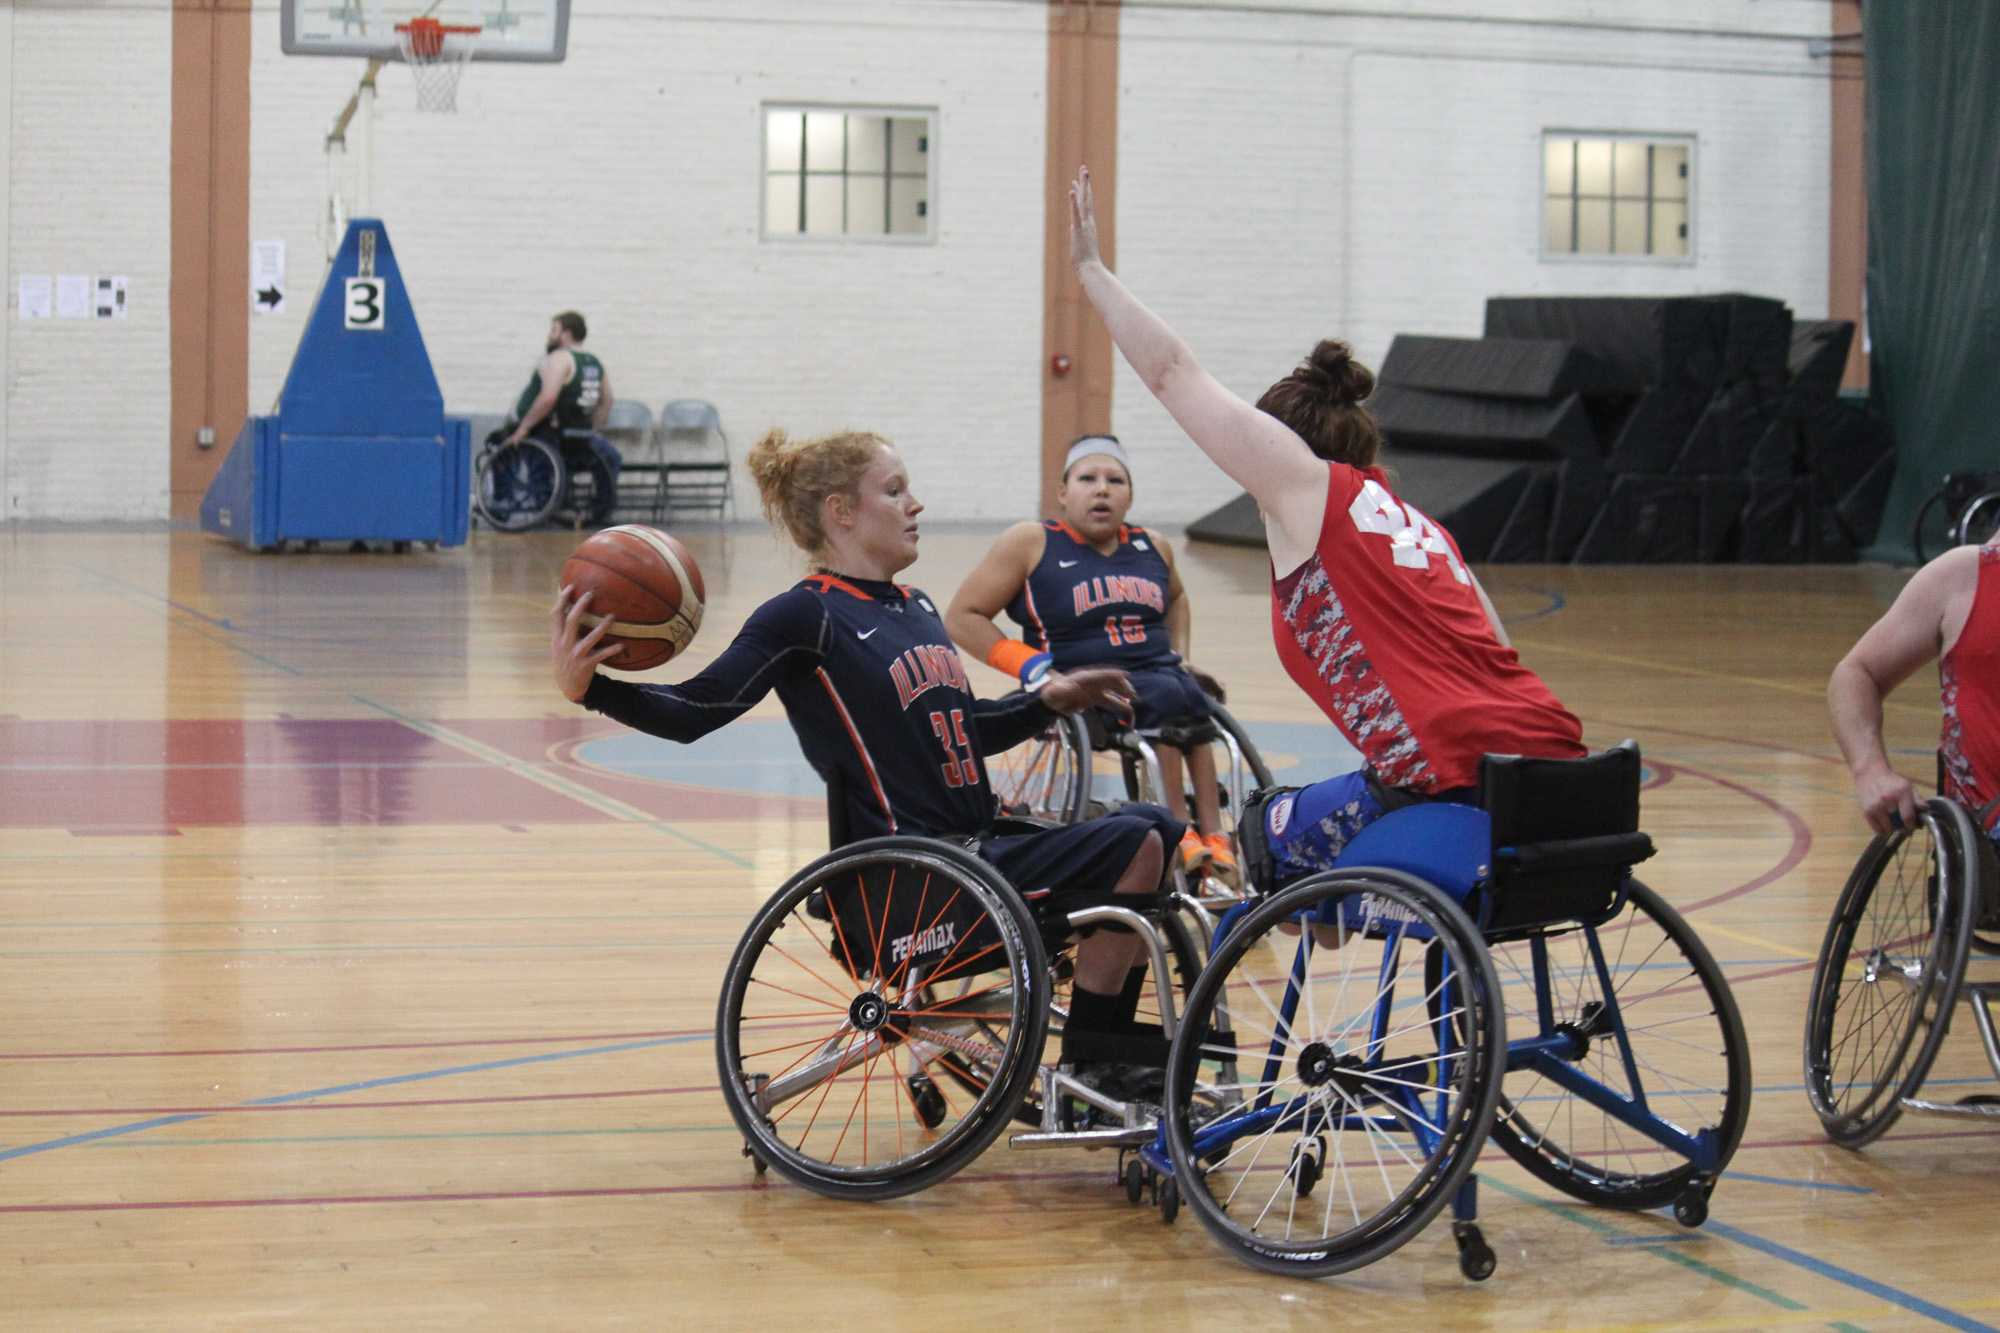 Grad student and captain Shelby Gruss looks to pass over threw the hands of the Mary Free Bed Rollin Drive defenders. Rollin Drive went on to defeat the Illinois women's wheelchair basketball team in the first round of the 2nd City Showdown's tournament in Chicago from Nov. 12-13.